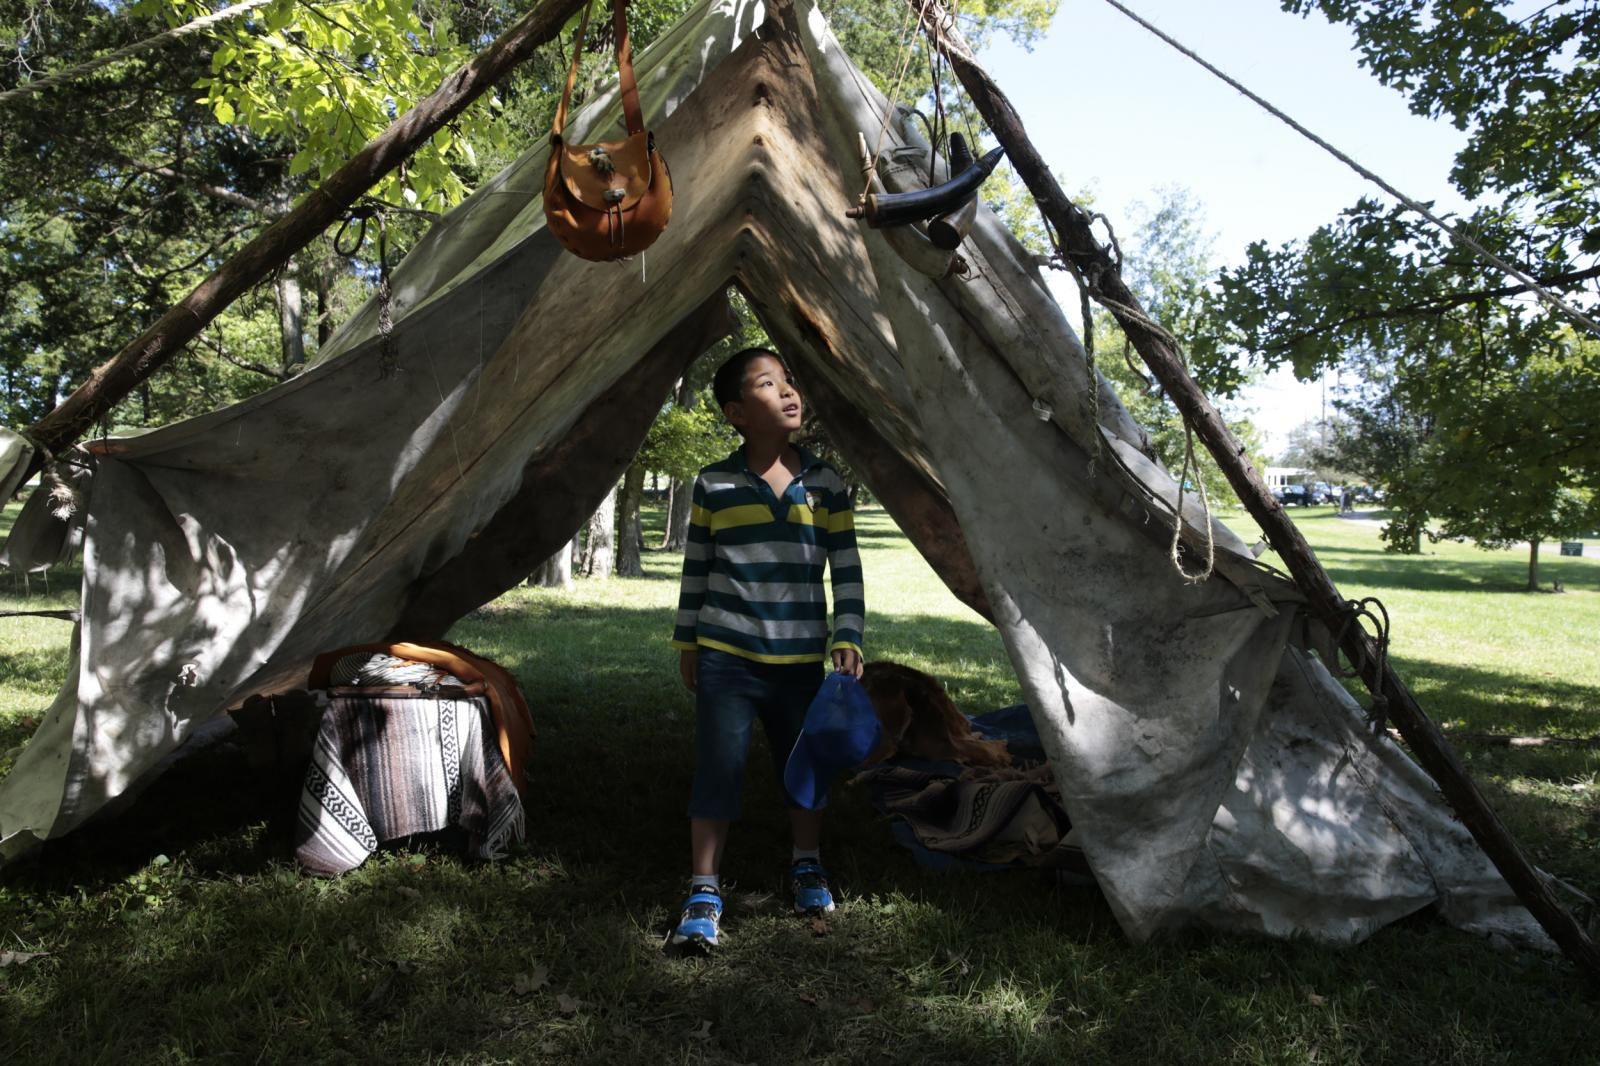 "Lucas He, 8, explores a 19th-century-style mountain man camp during Columbia's 39th annual Heritage Festival and Craft Show at Nifong Park on Sept. 17, 2016. A dozen artisans and tradesmen dressed in 19th-century attire demonstrated their trades and sold their wares. Xiao Ling Guo, the boy's mother, said, ""We are newcomers, so I think it's really important for us to understand the depth of local culture."""